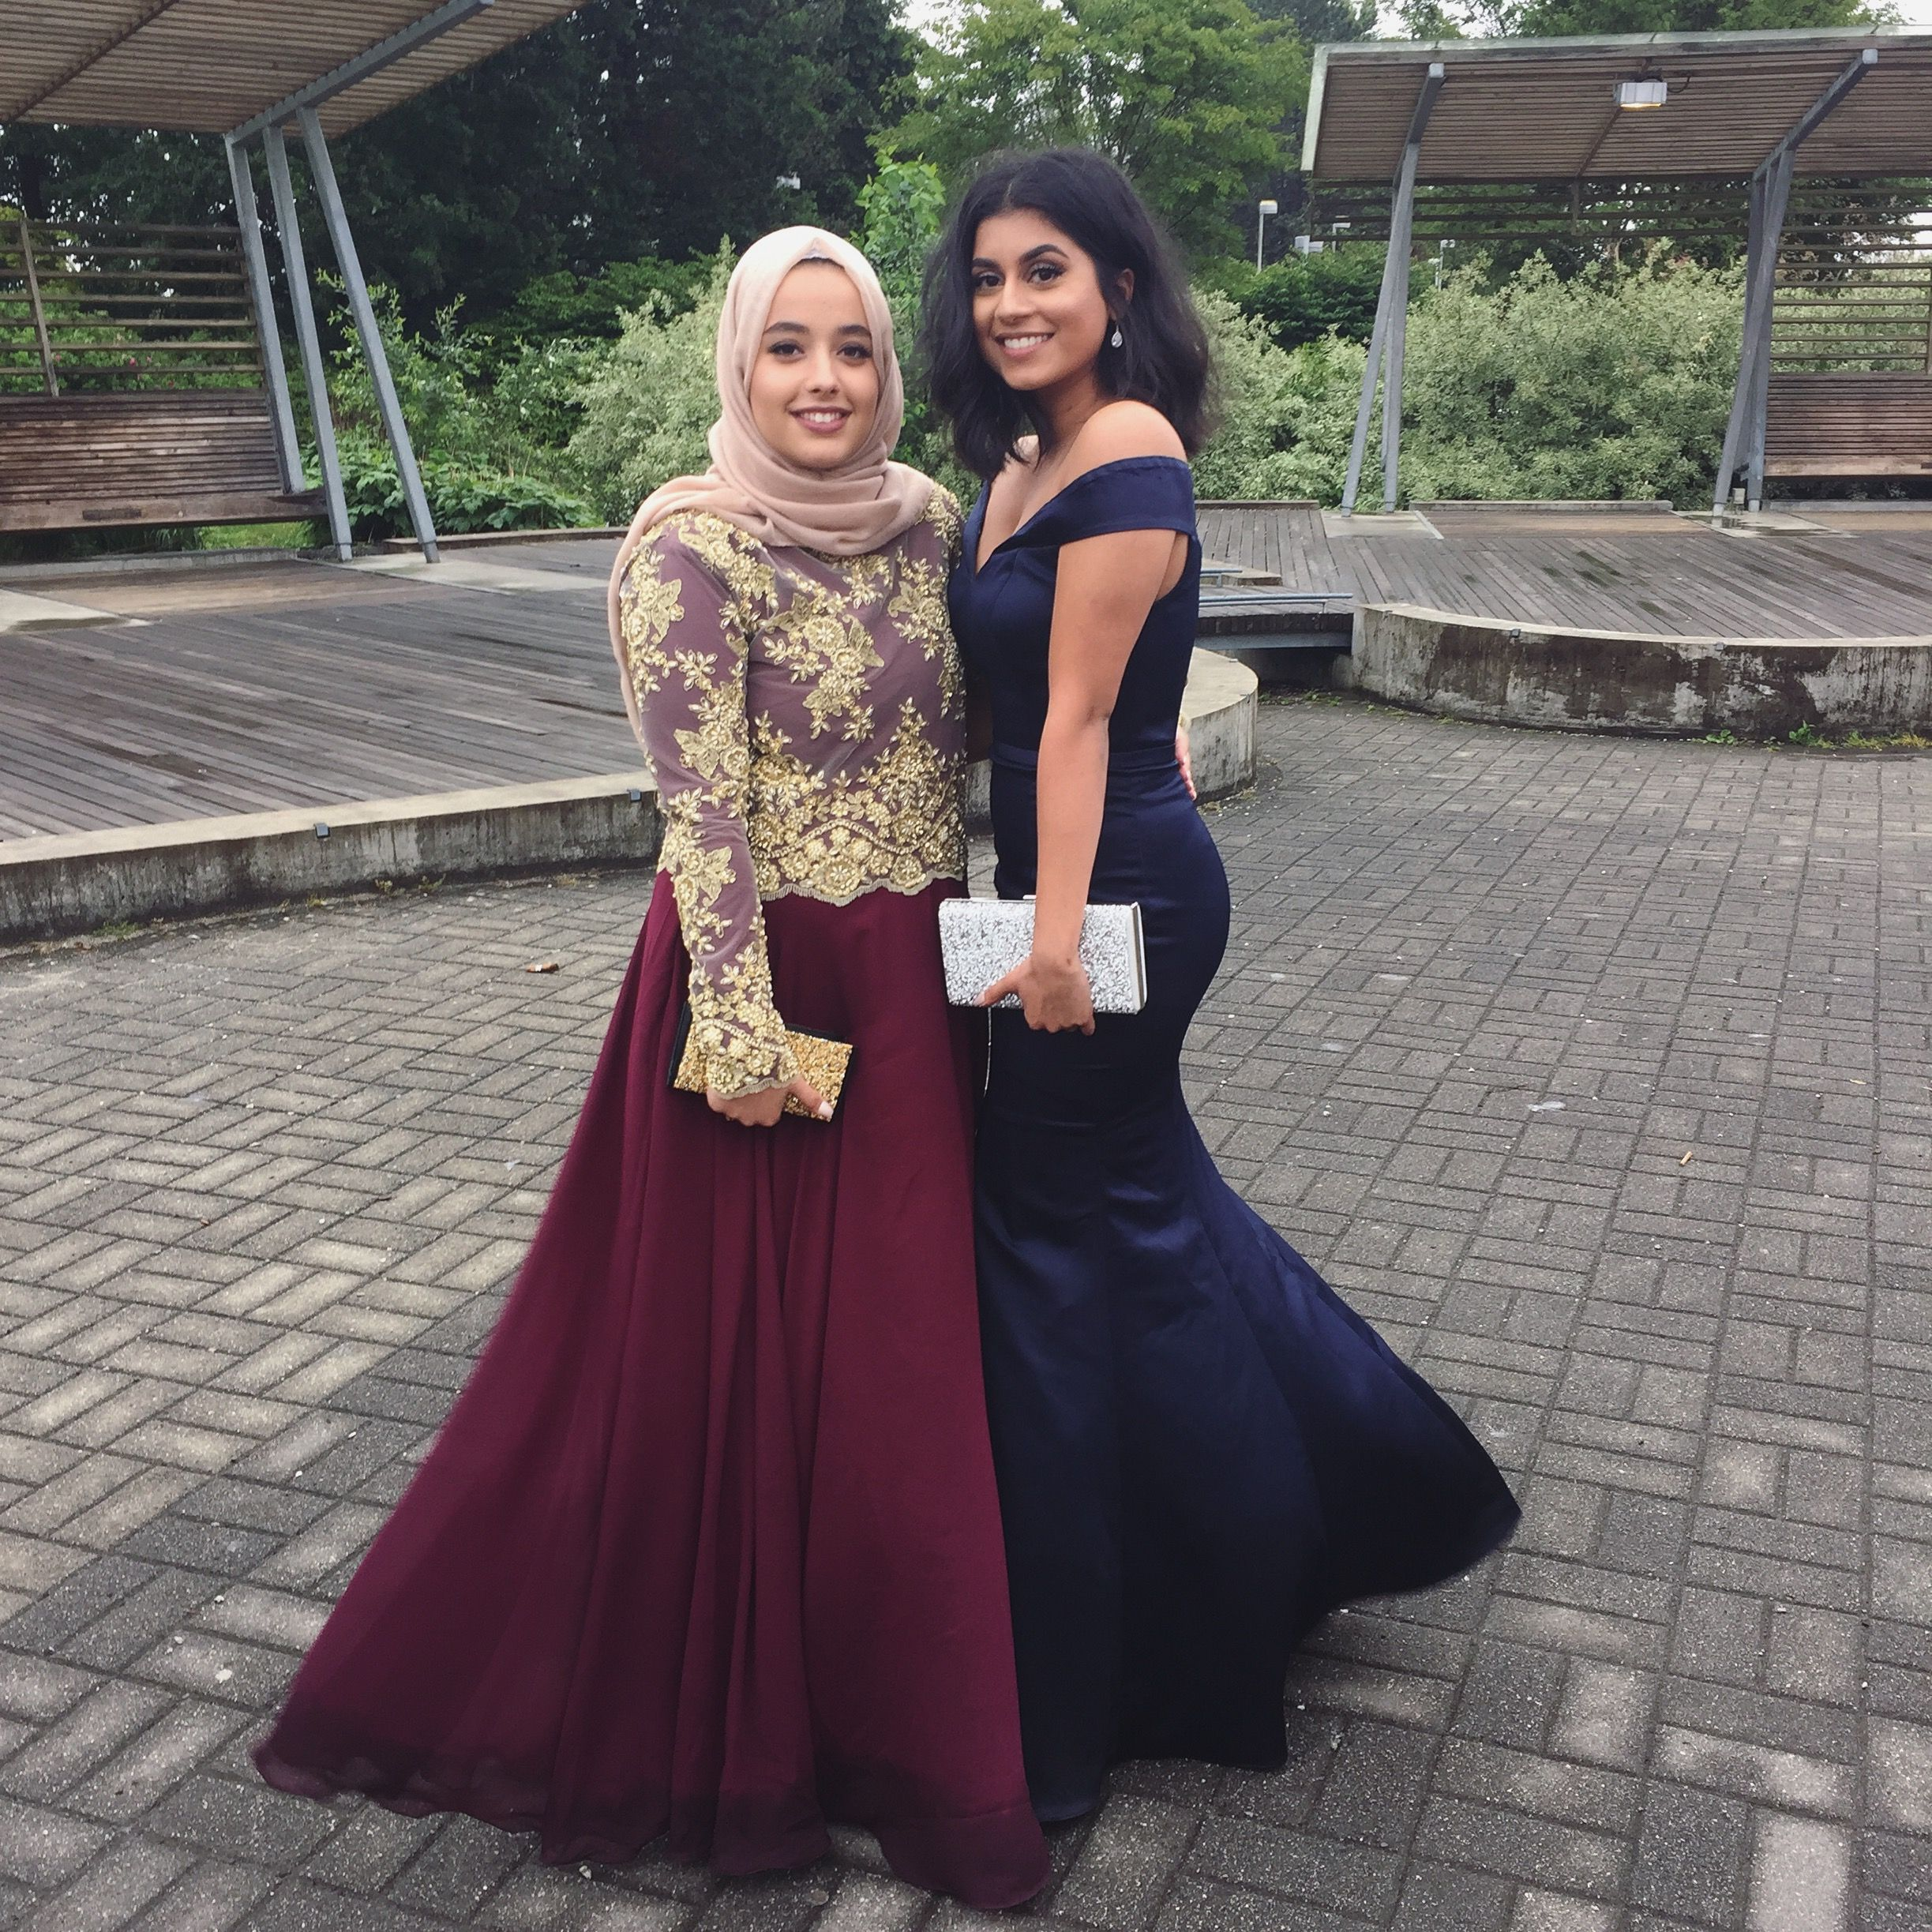 Hijabi prom dress ,,\u003e (Roaa Ramadan , YouTube, Instagram, Twitter, Tumblr)